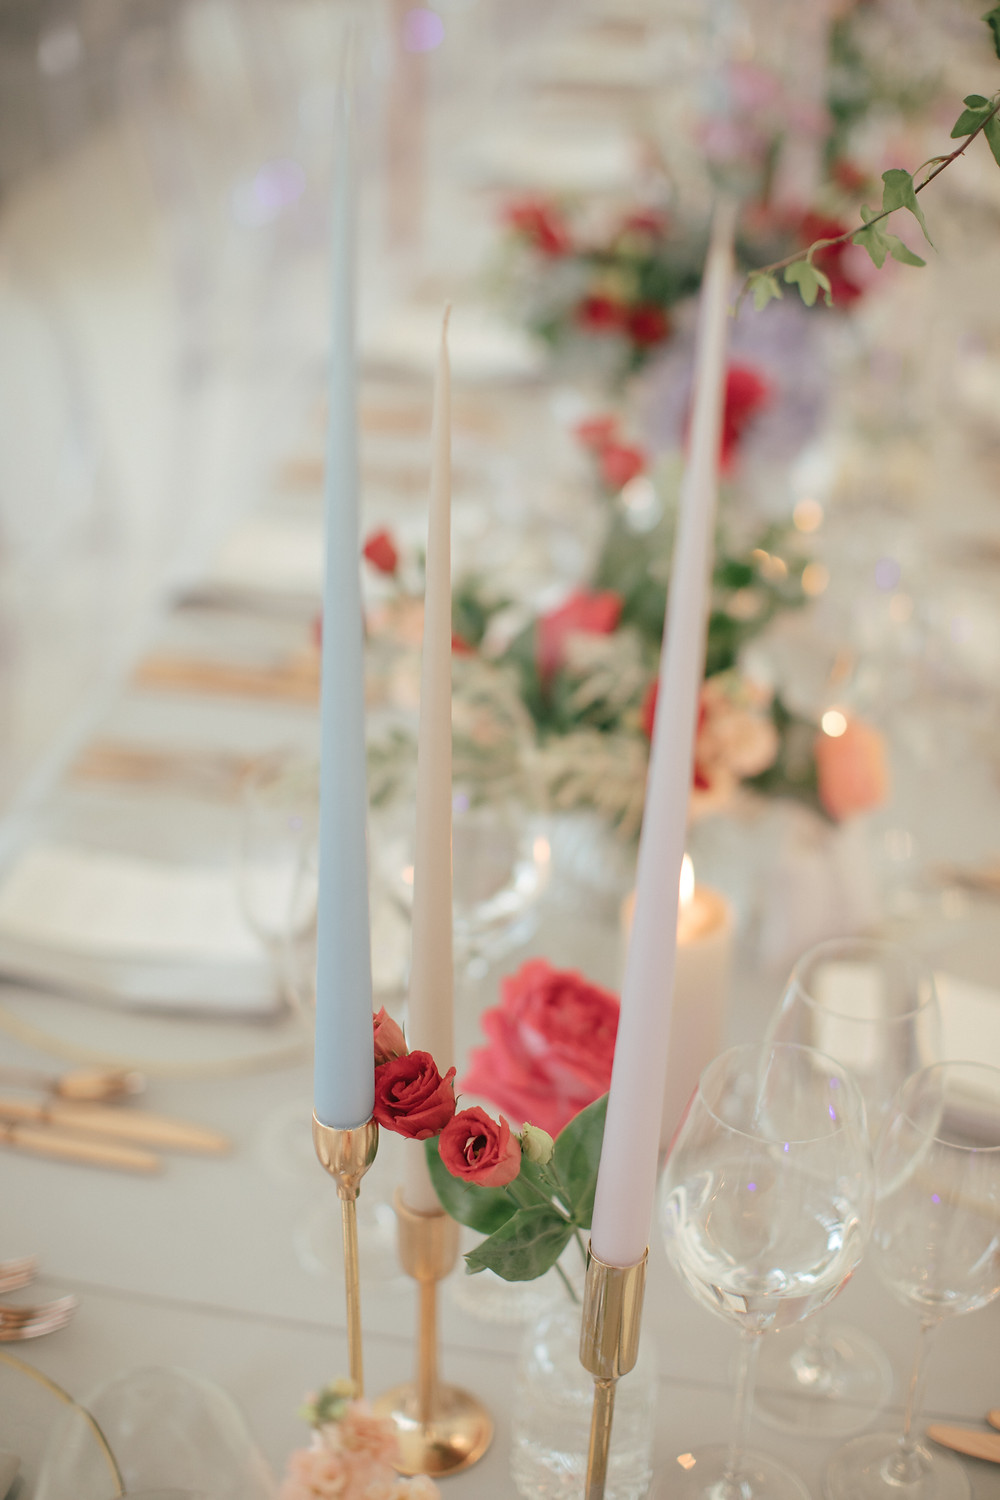 Wedding Design Ideas - Table Settings